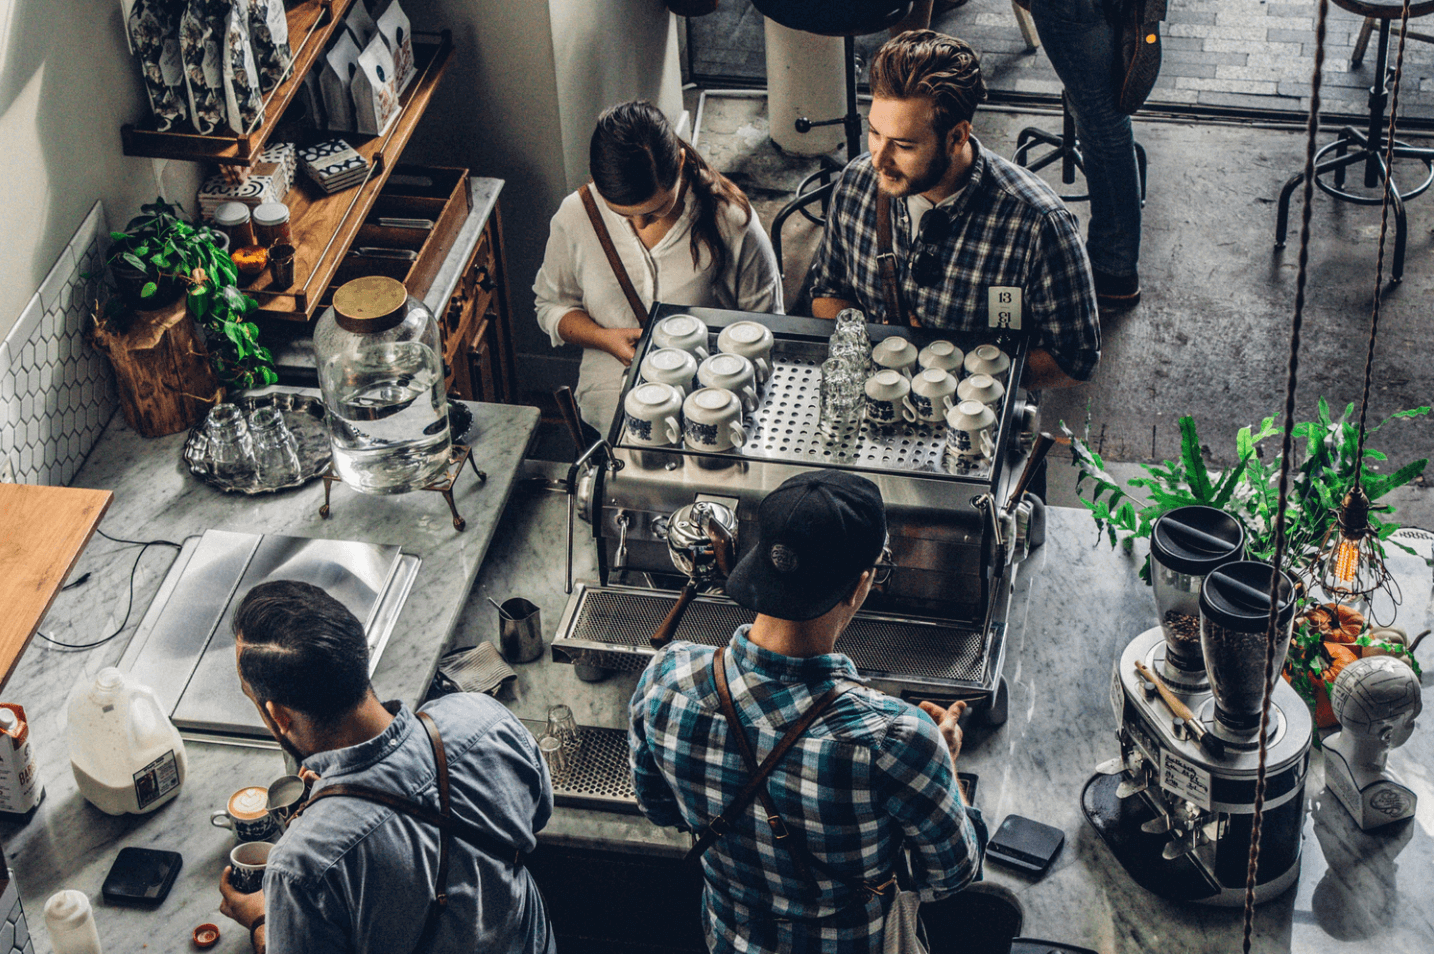 Young people working in a modern cafe.